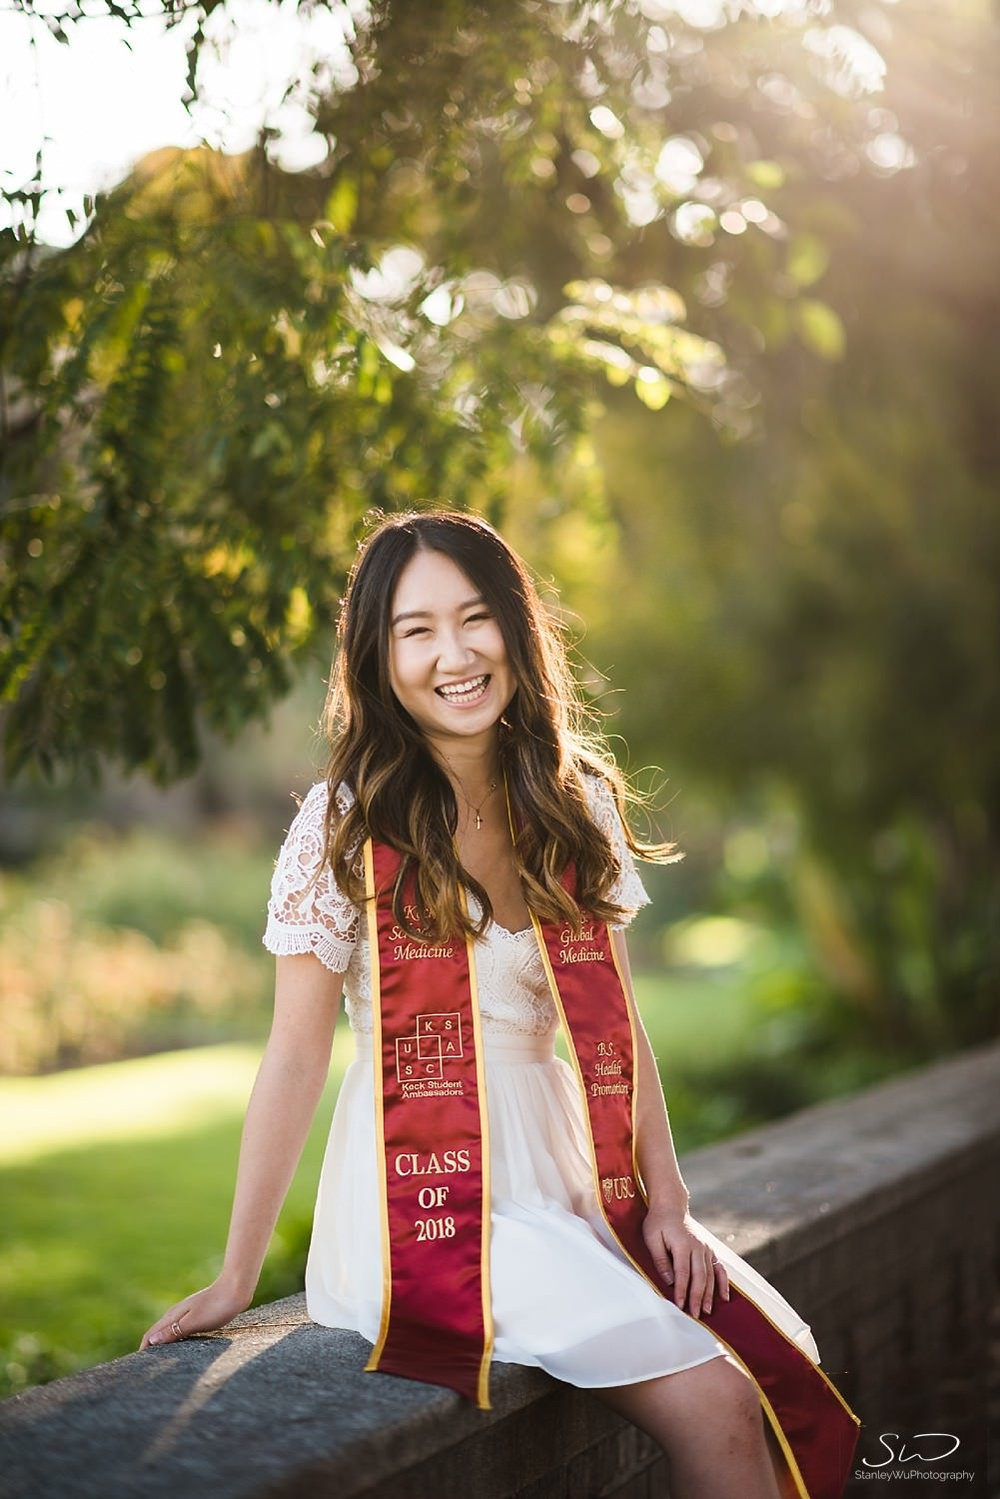 Laughing portrait and wearing graduation sash at the Rose Garden at USC | Los Angeles Orange County Senior Portrait & Wedding Photographer